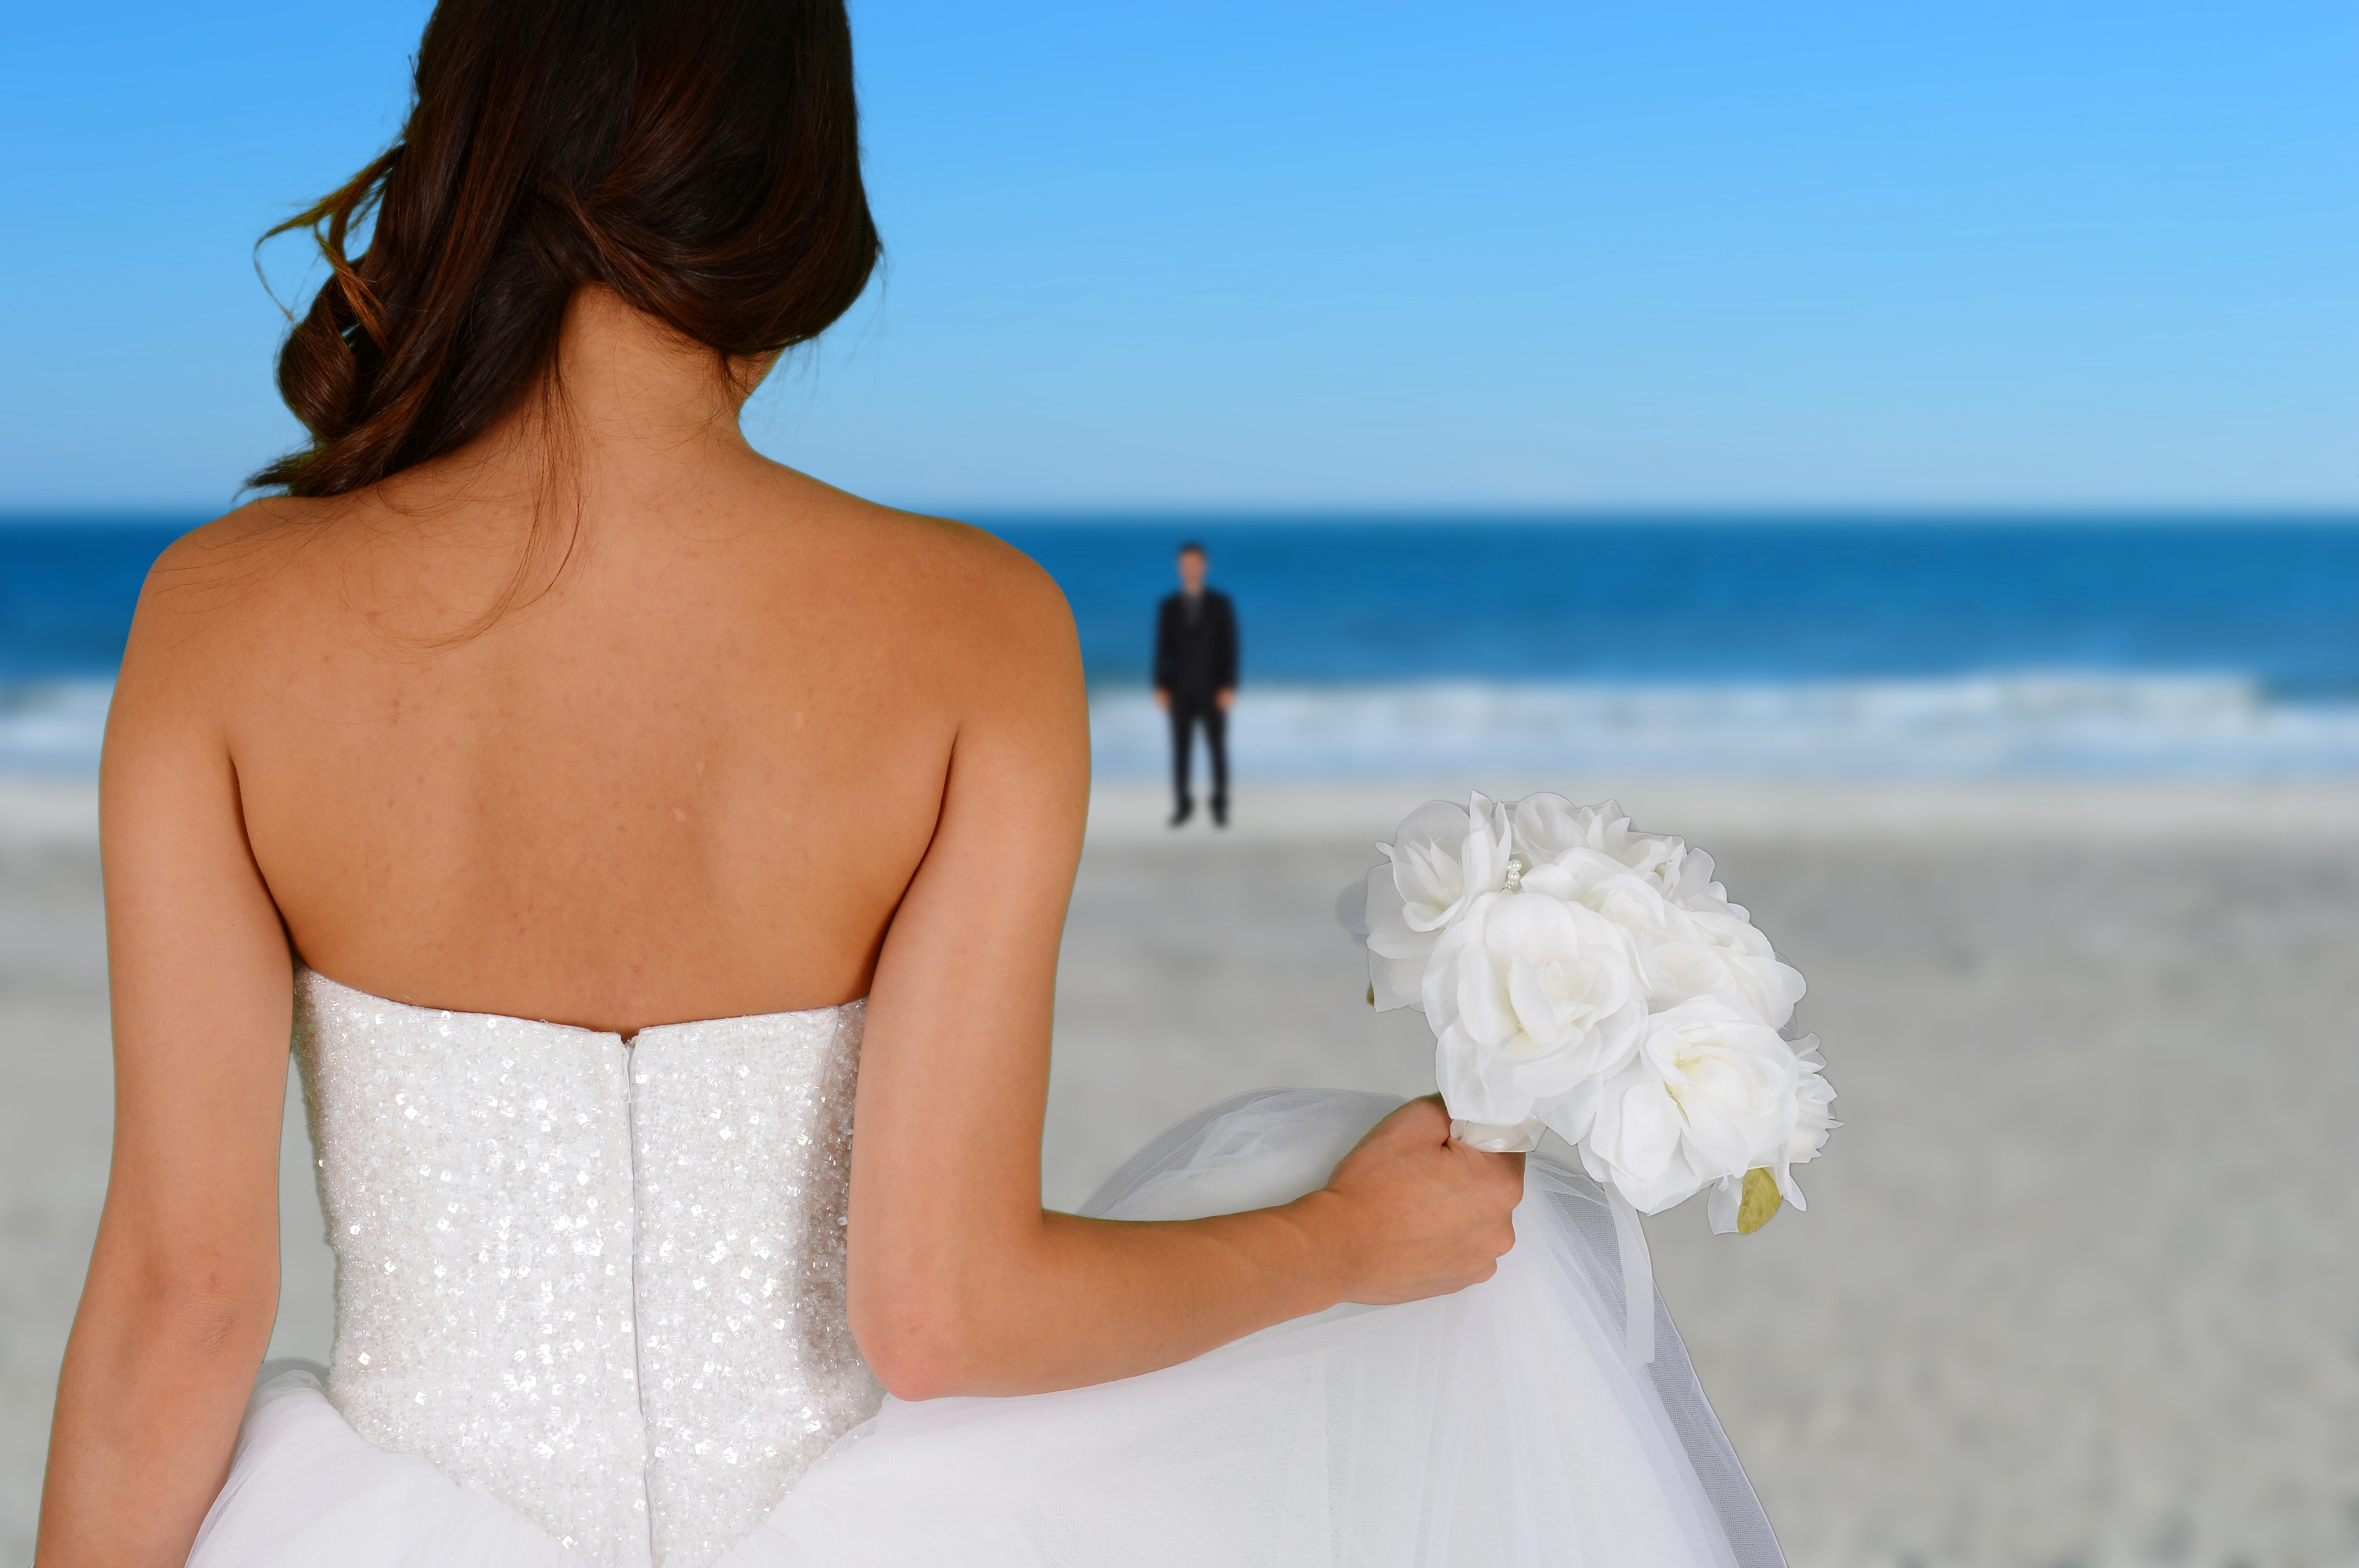 Woman in a beautiful white wedding dress with groom